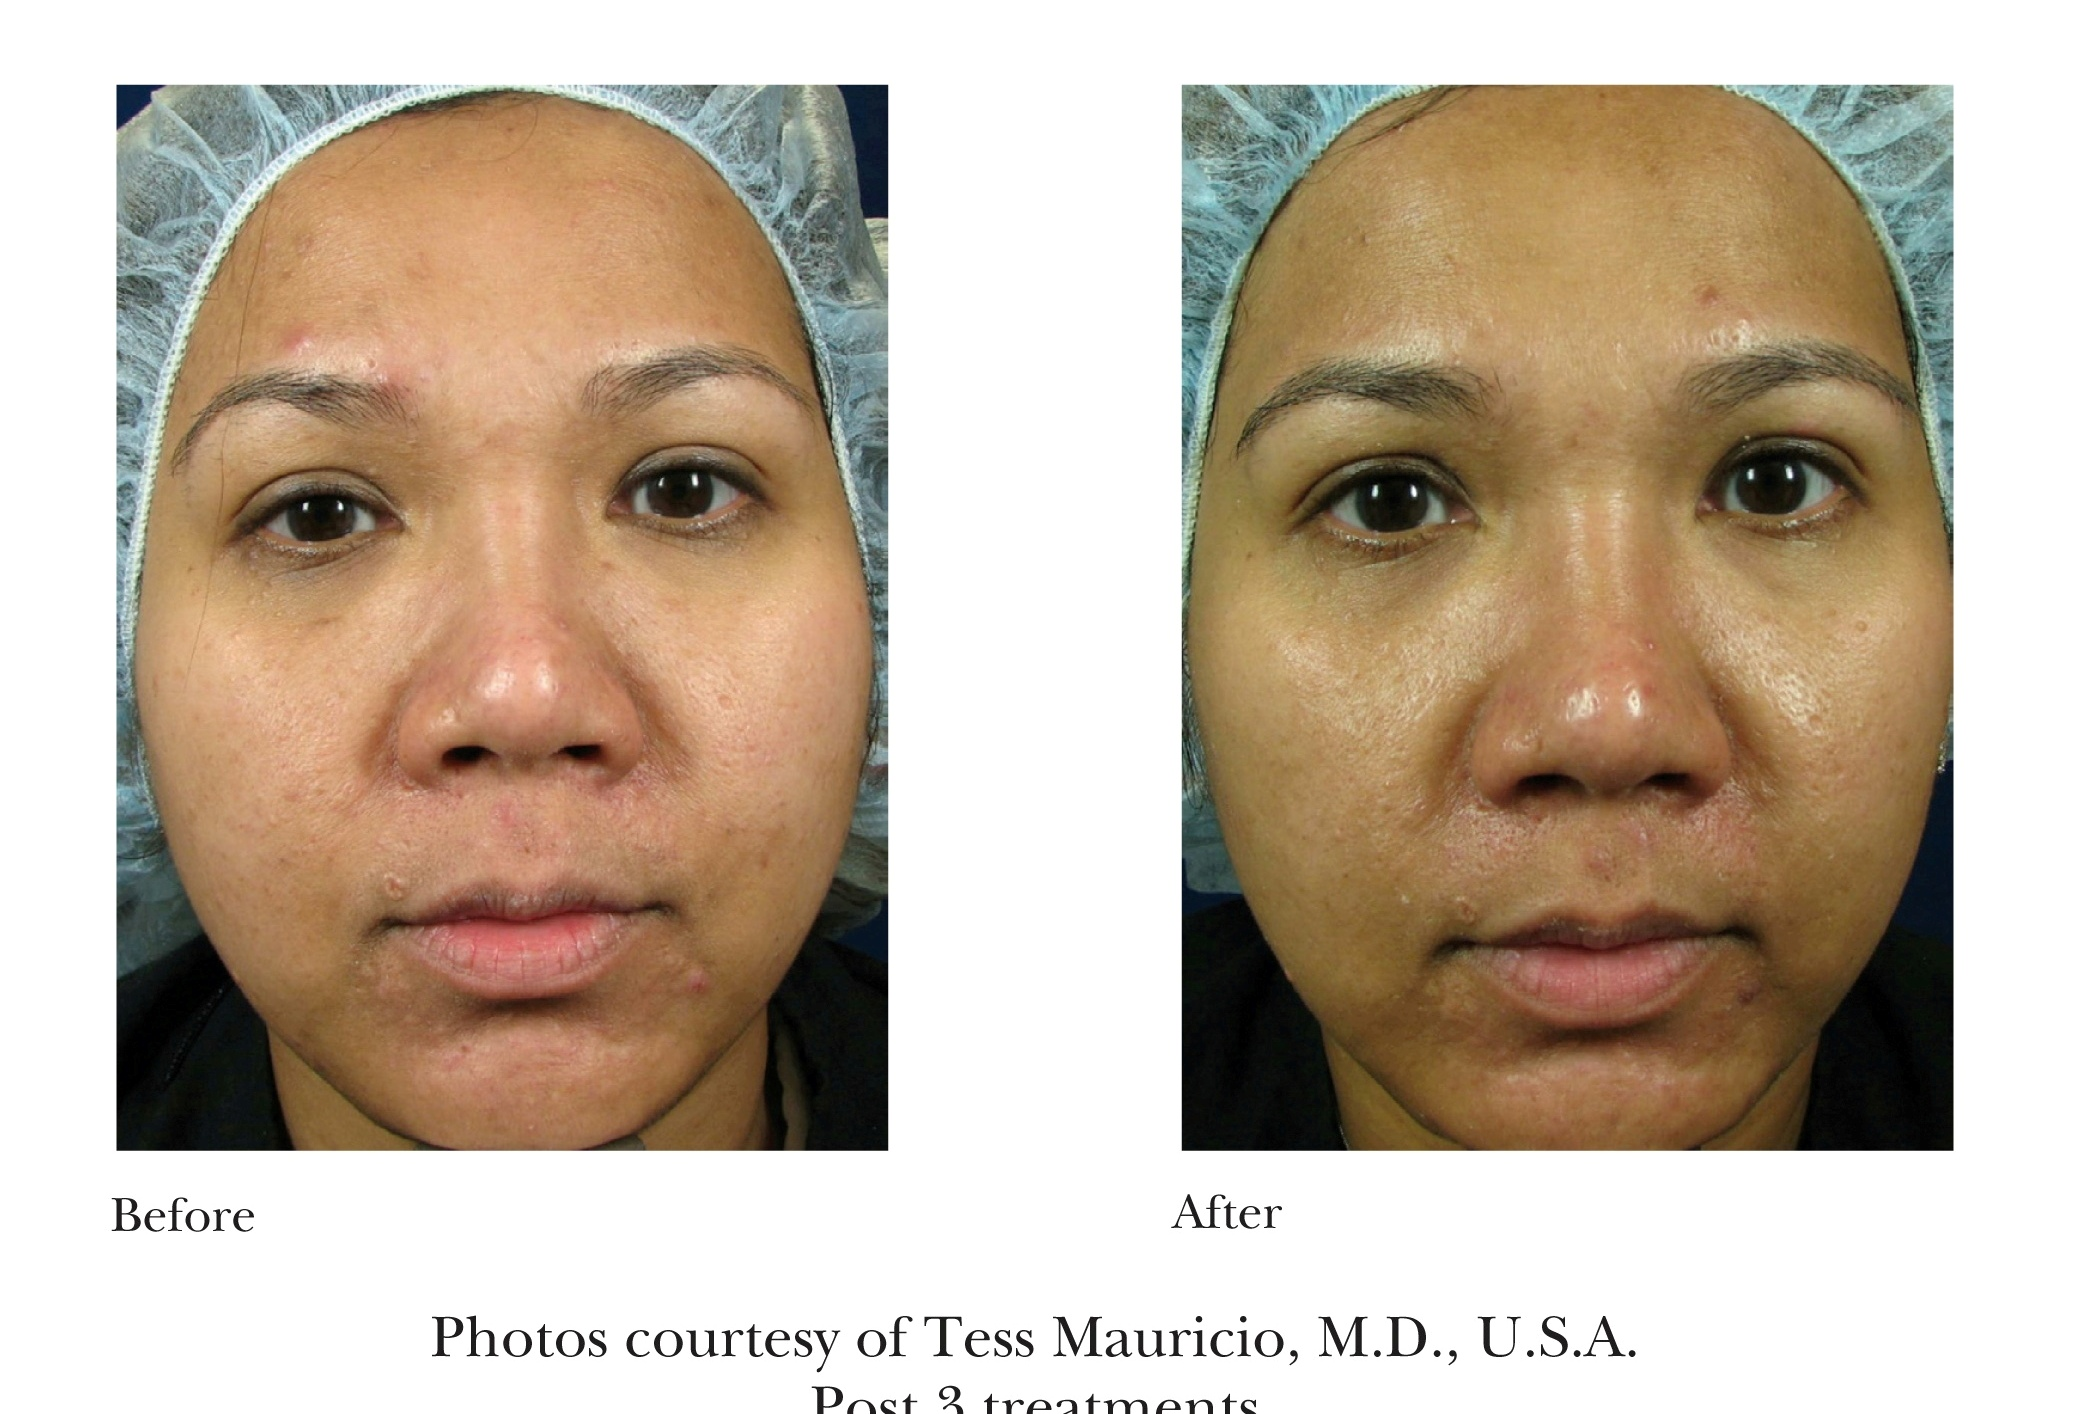 Before and After Emtraix Treatment Review 2